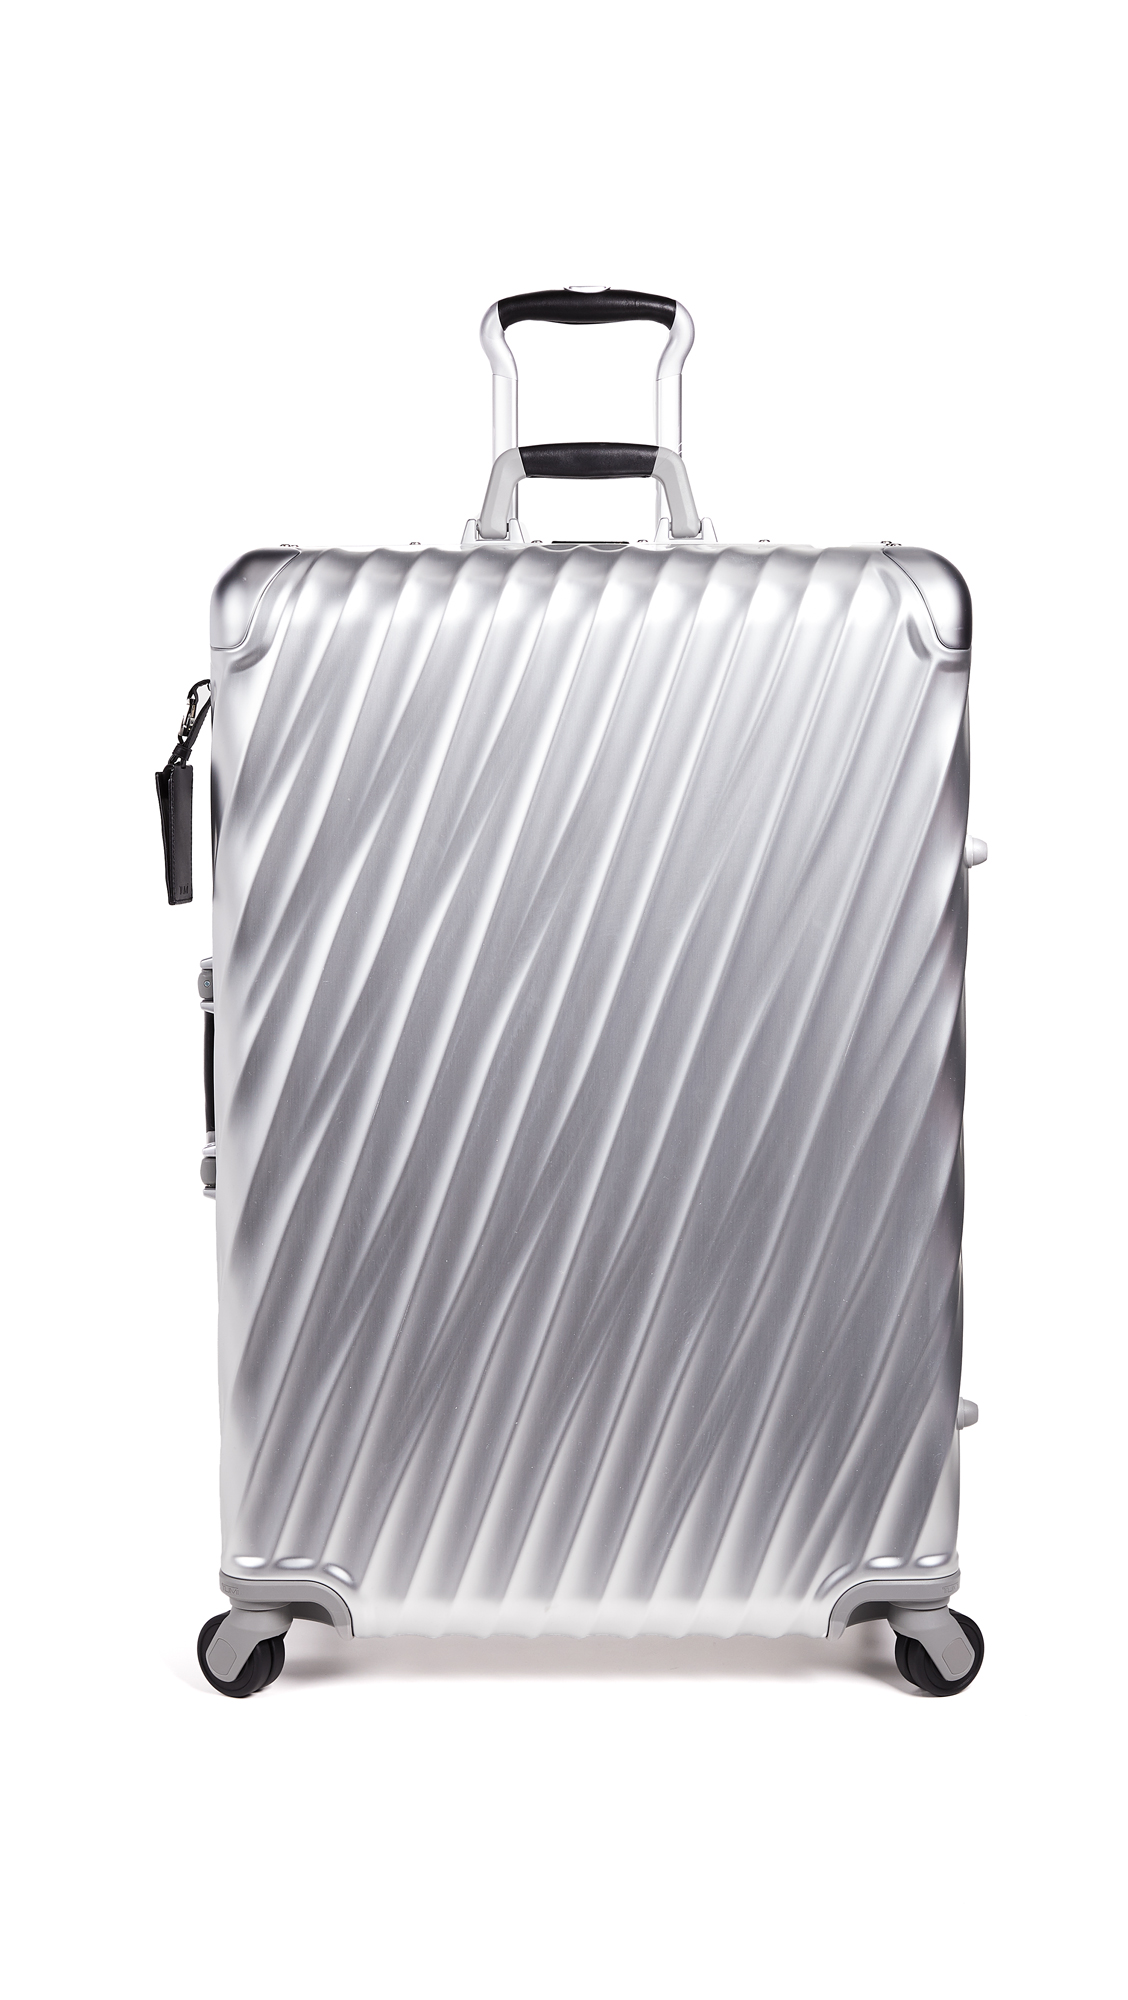 19 Degree Aluminium Extended Trip Packing Case, Silver